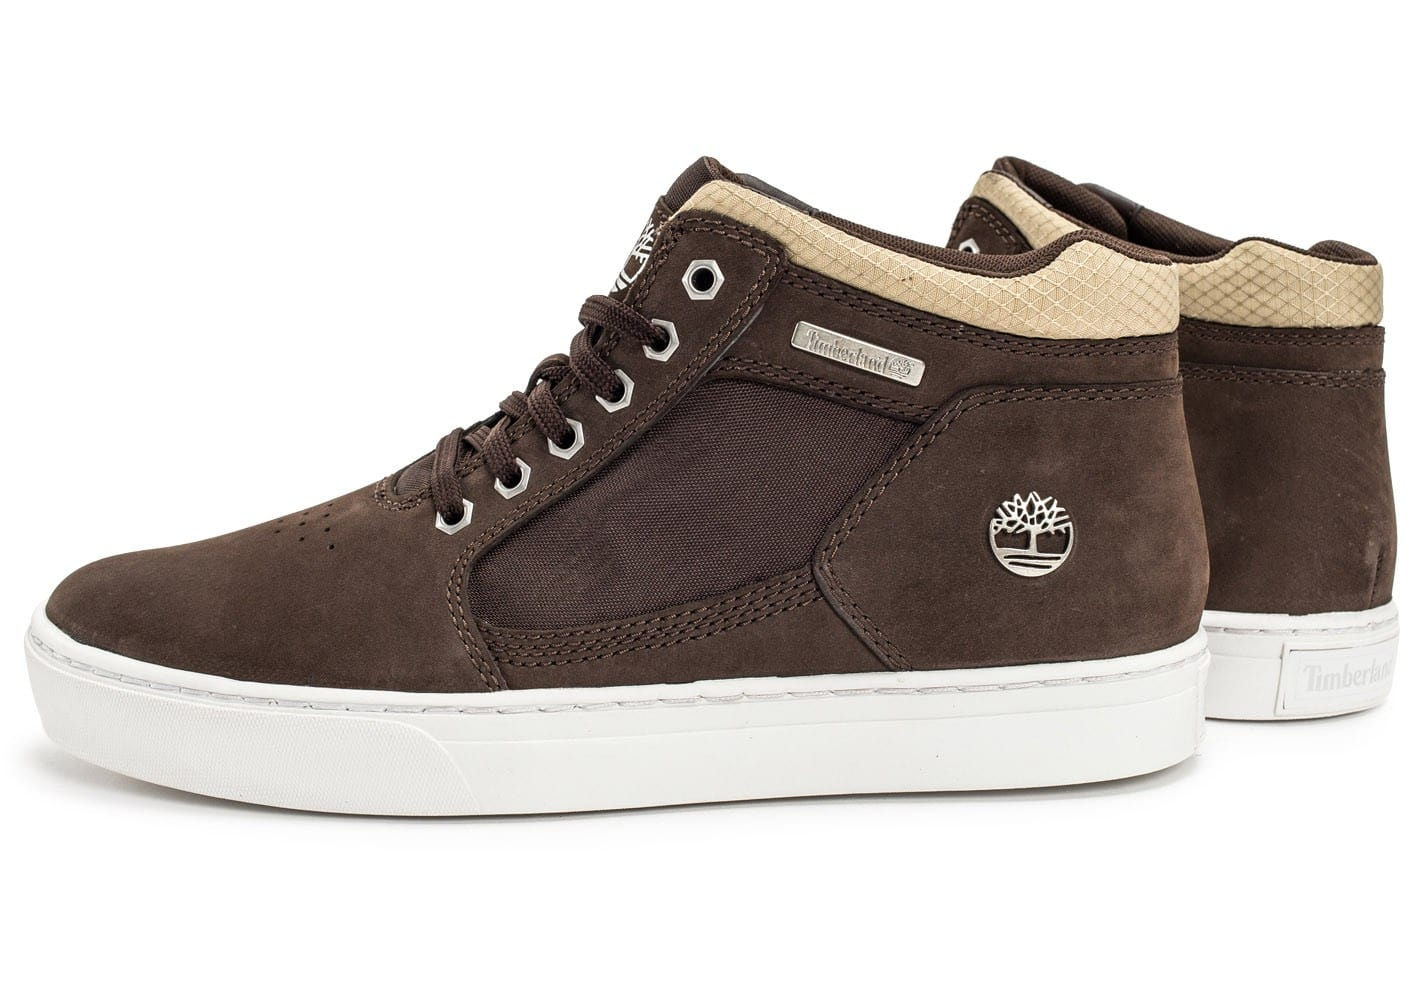 timberland cupsole merge 2 0 marron chaussures homme chausport. Black Bedroom Furniture Sets. Home Design Ideas